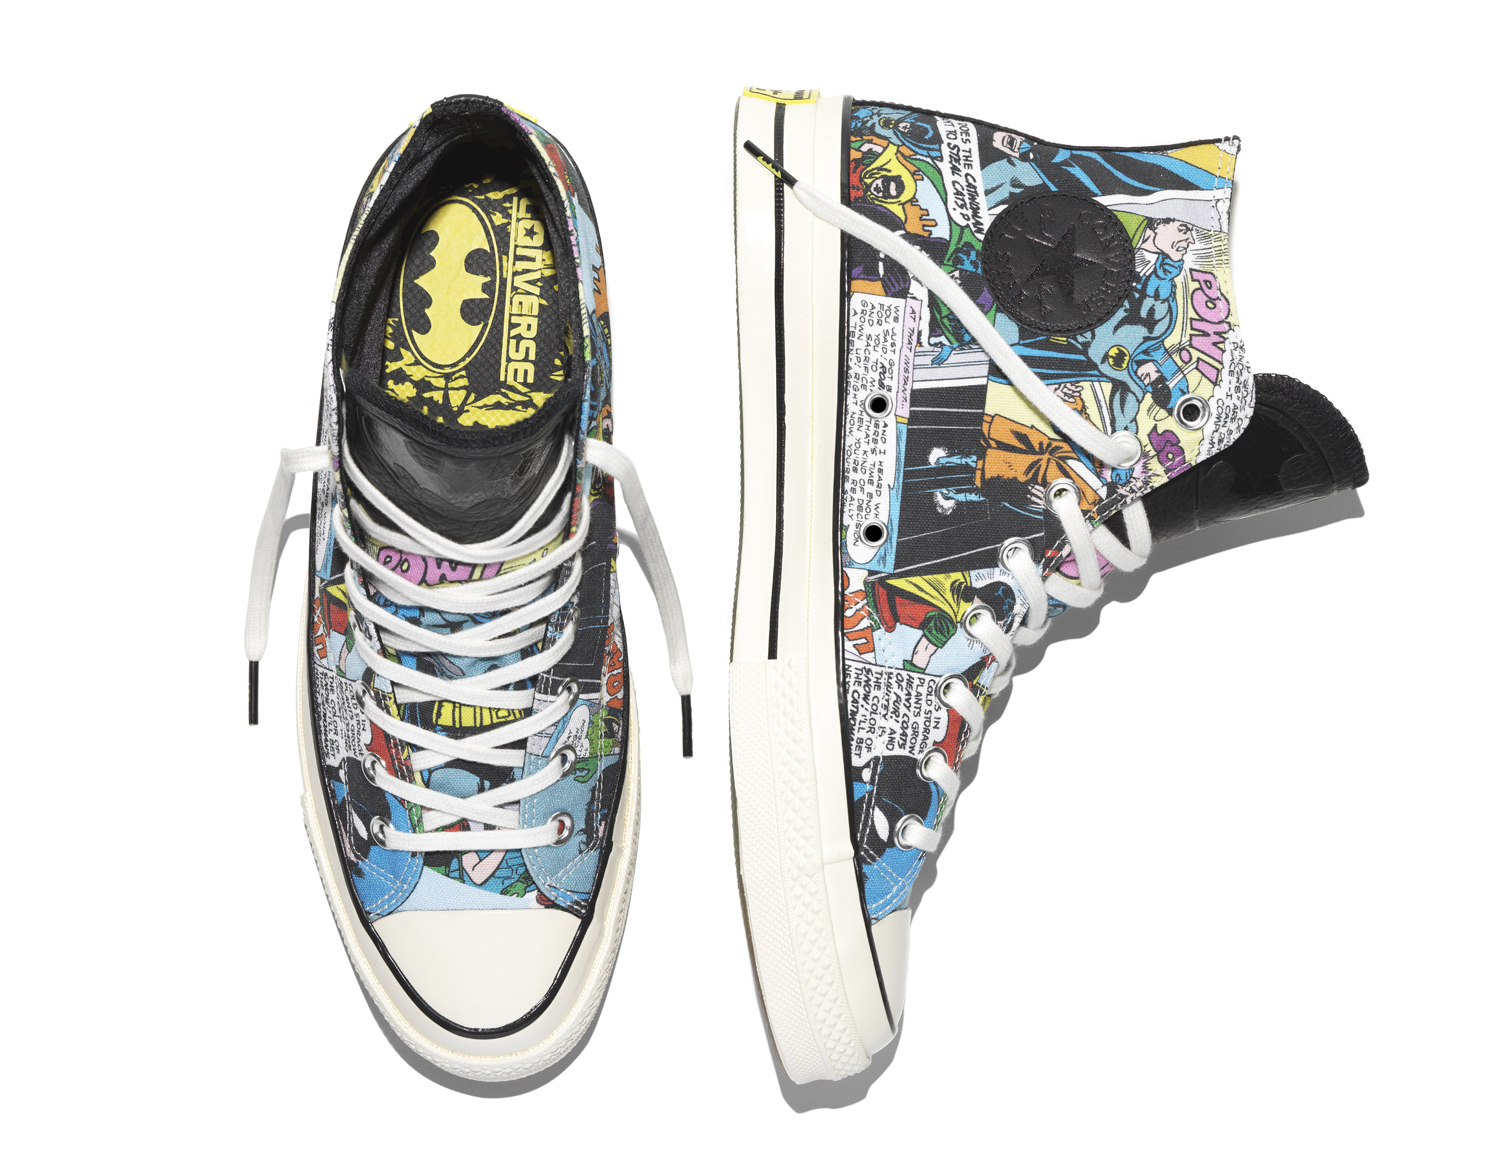 Batman Converse Sneakers Top